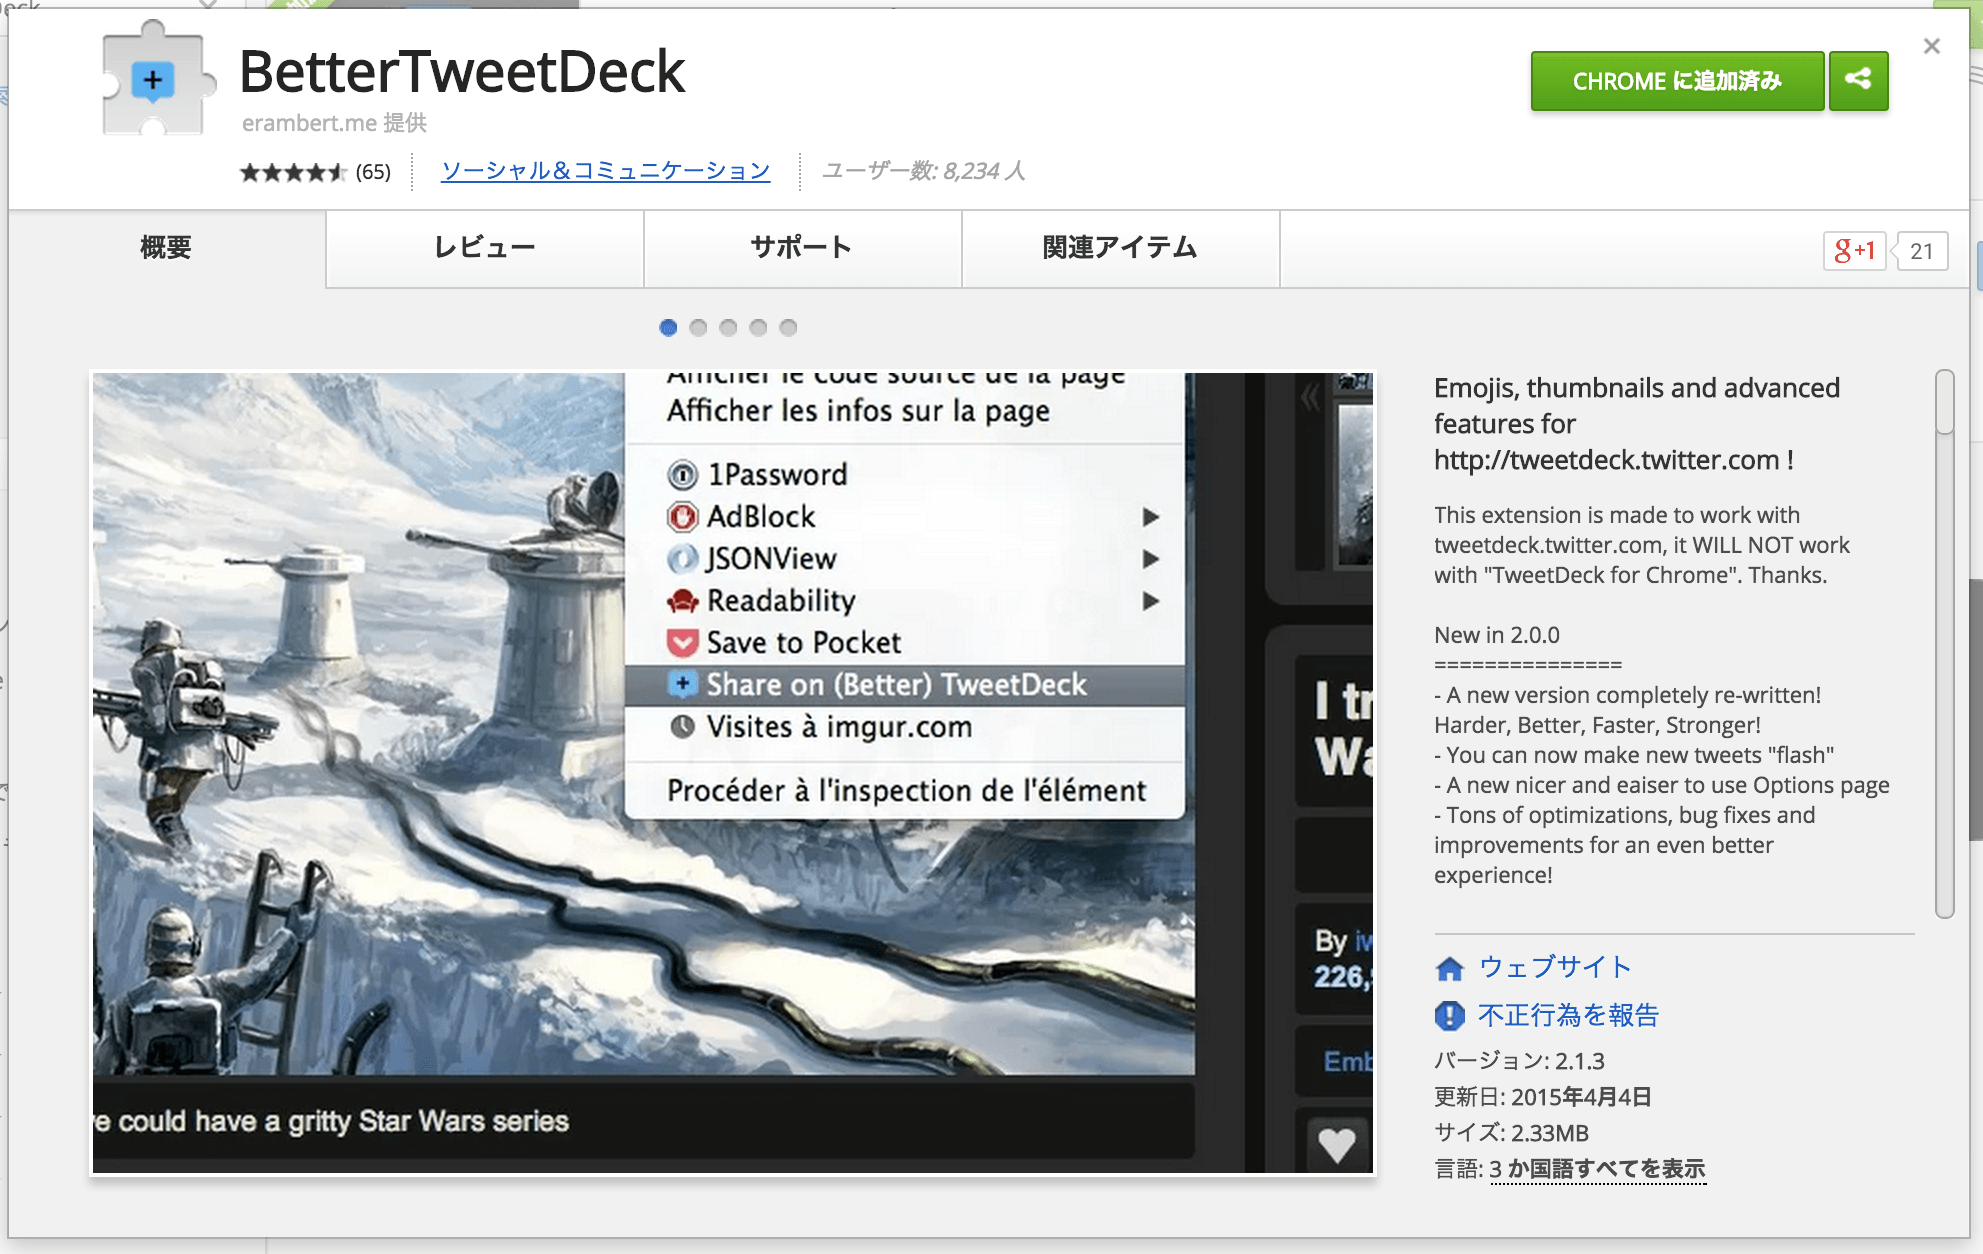 tweetdeck chrome extension